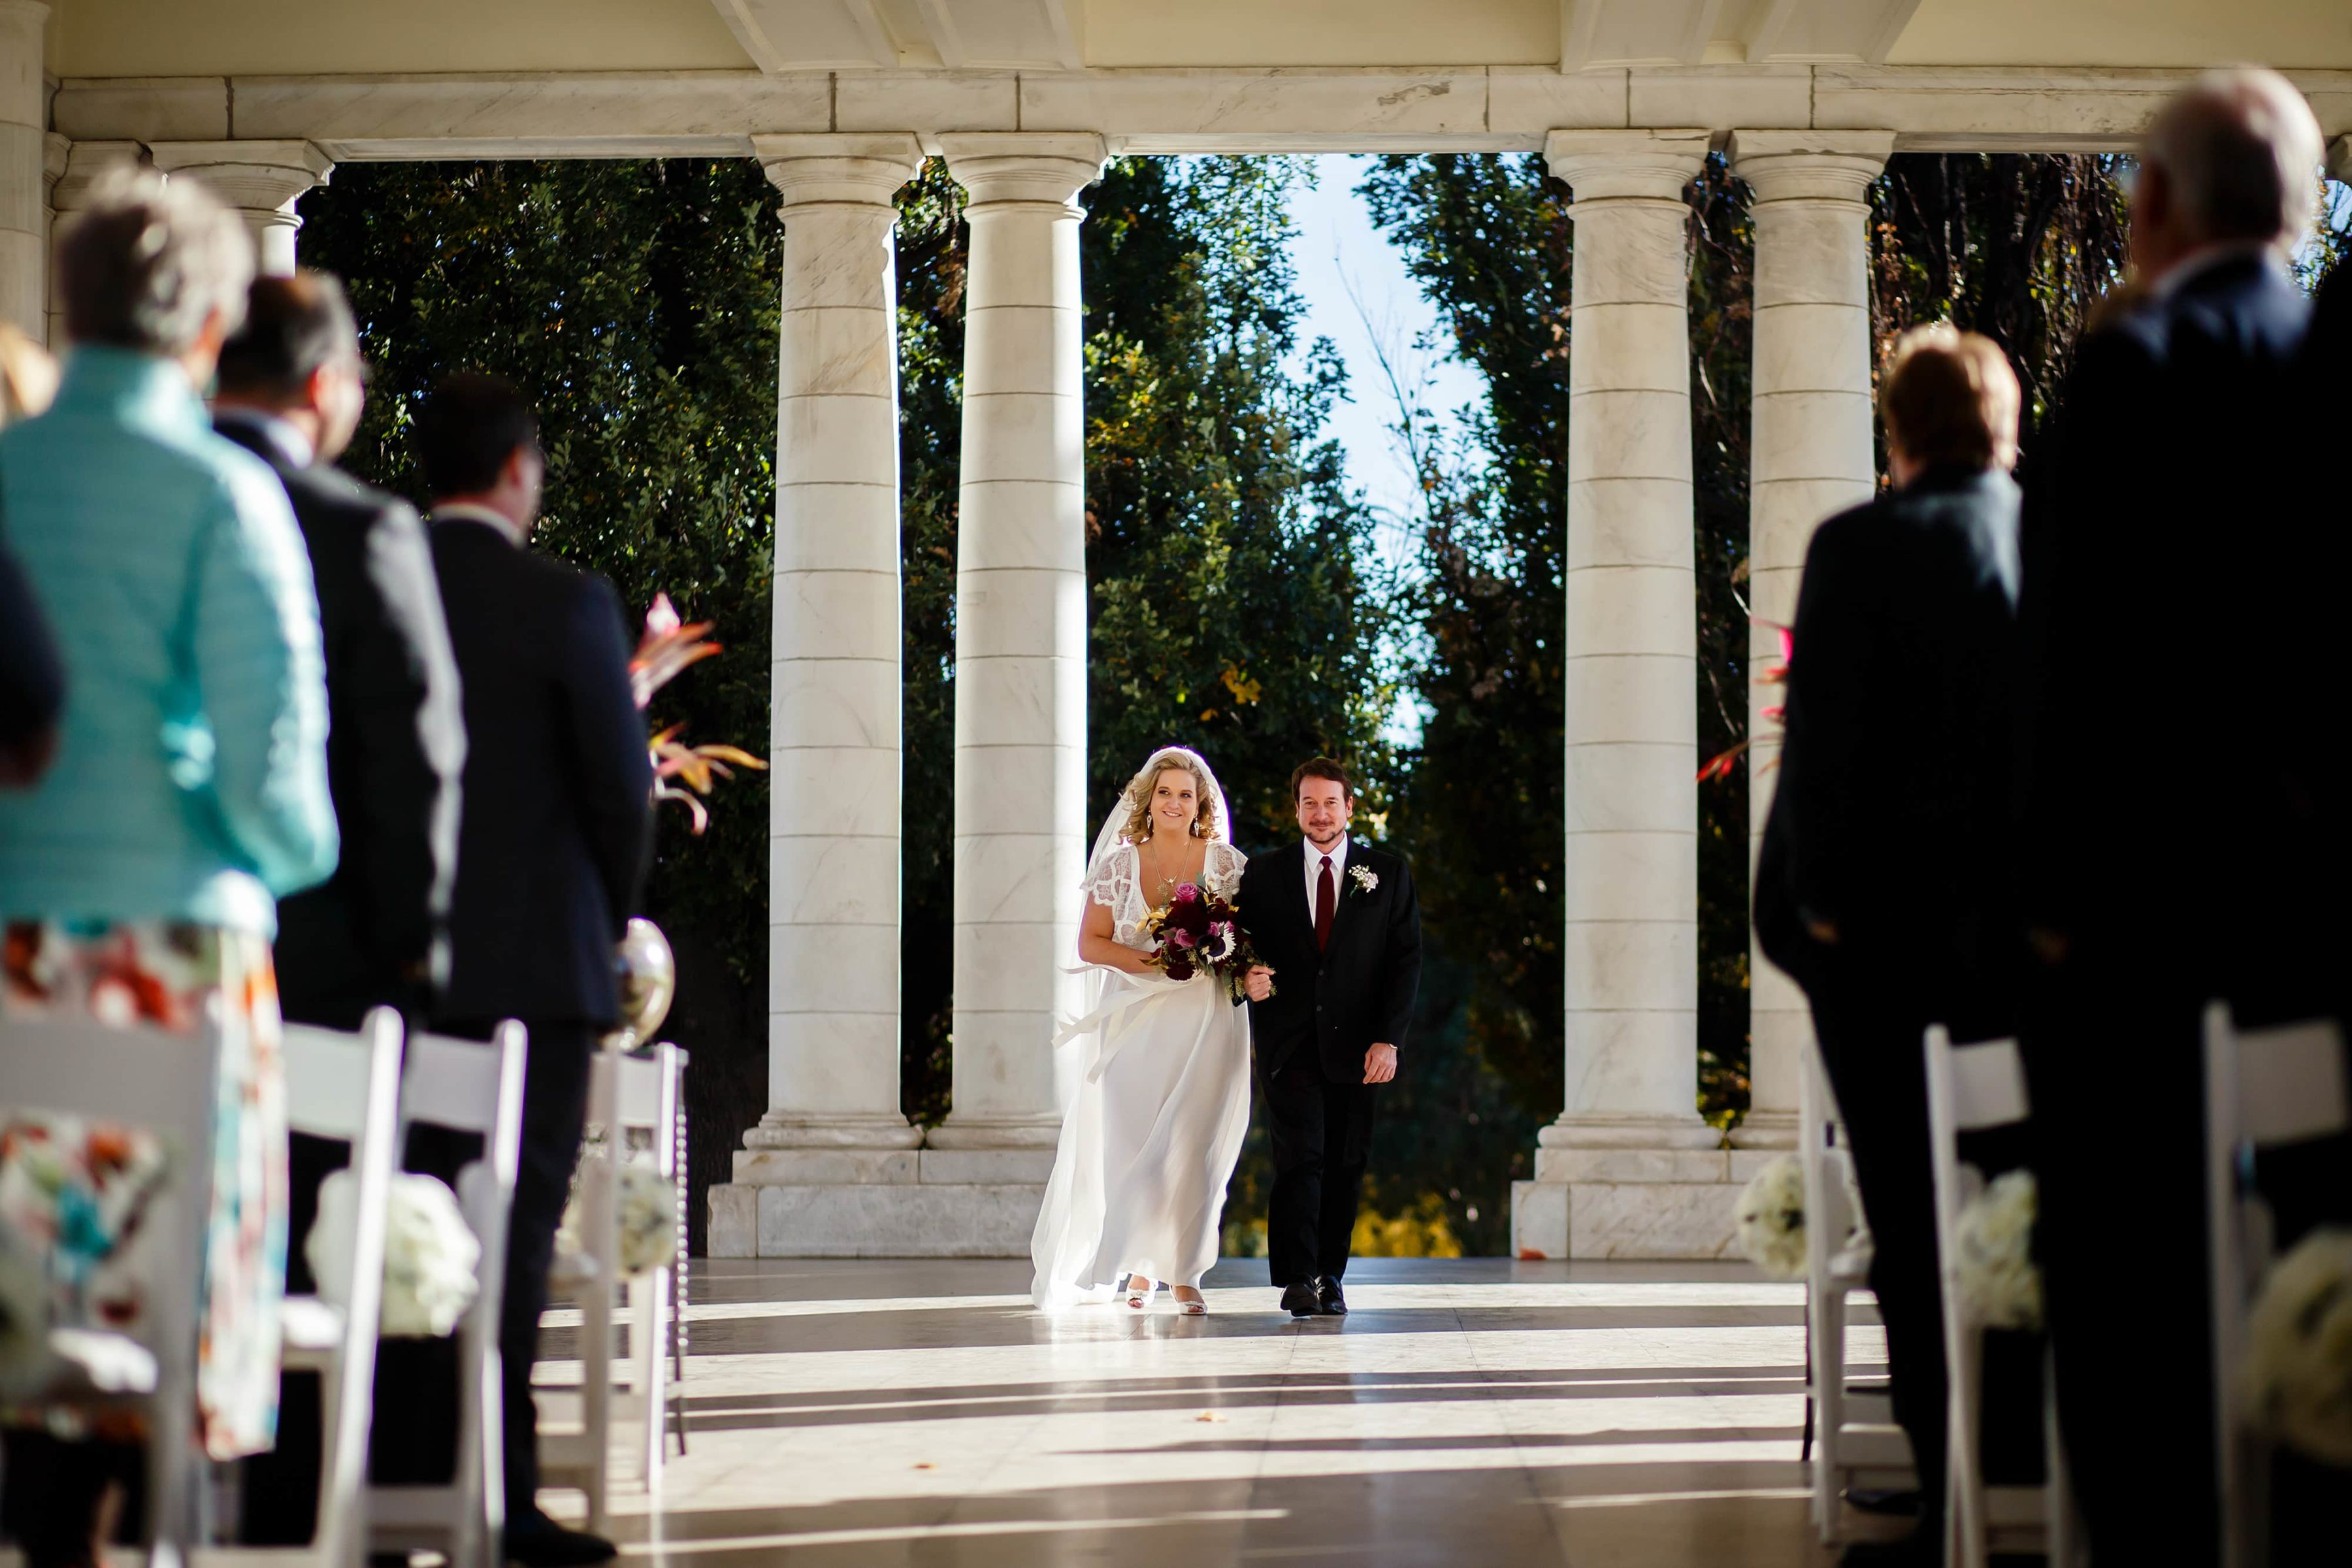 Sarah walks down the aisle with her father during her wedding at the pavillion at Cheesman Park in Denver